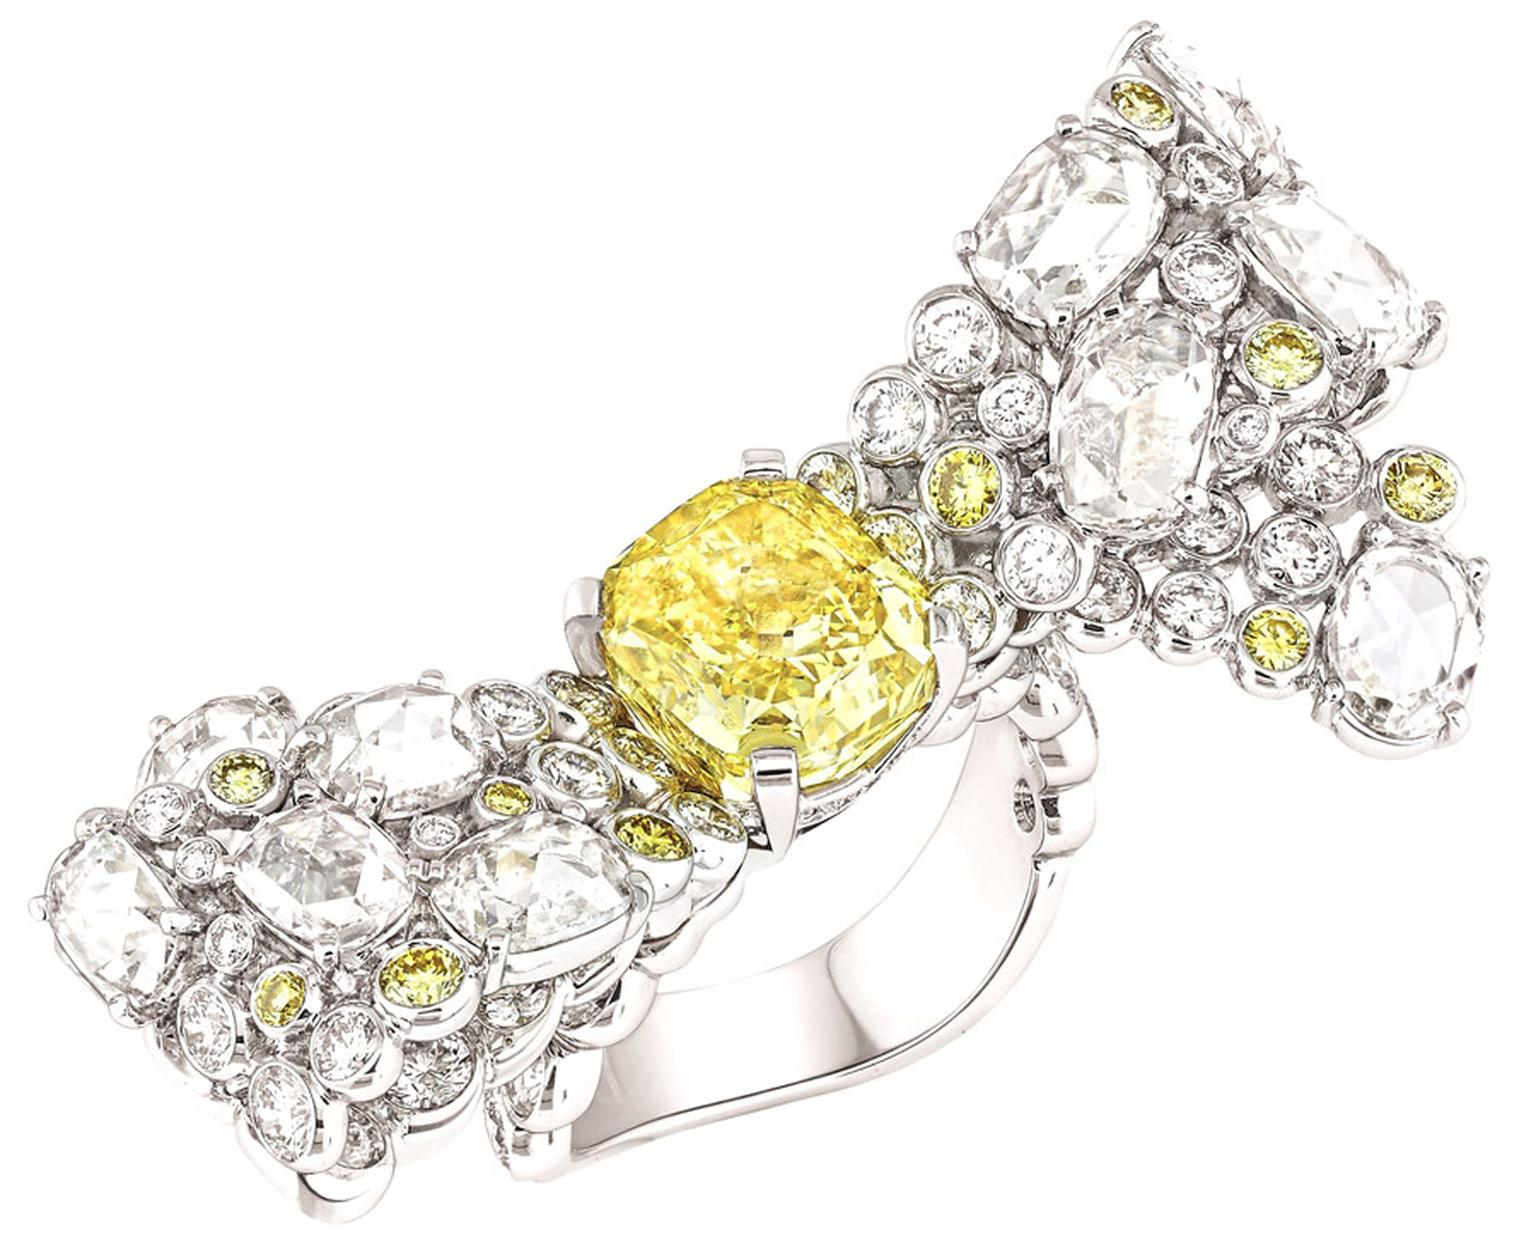 Chanel-Bague-Ruban-Mademoiselle-Dia-Jaune-GM